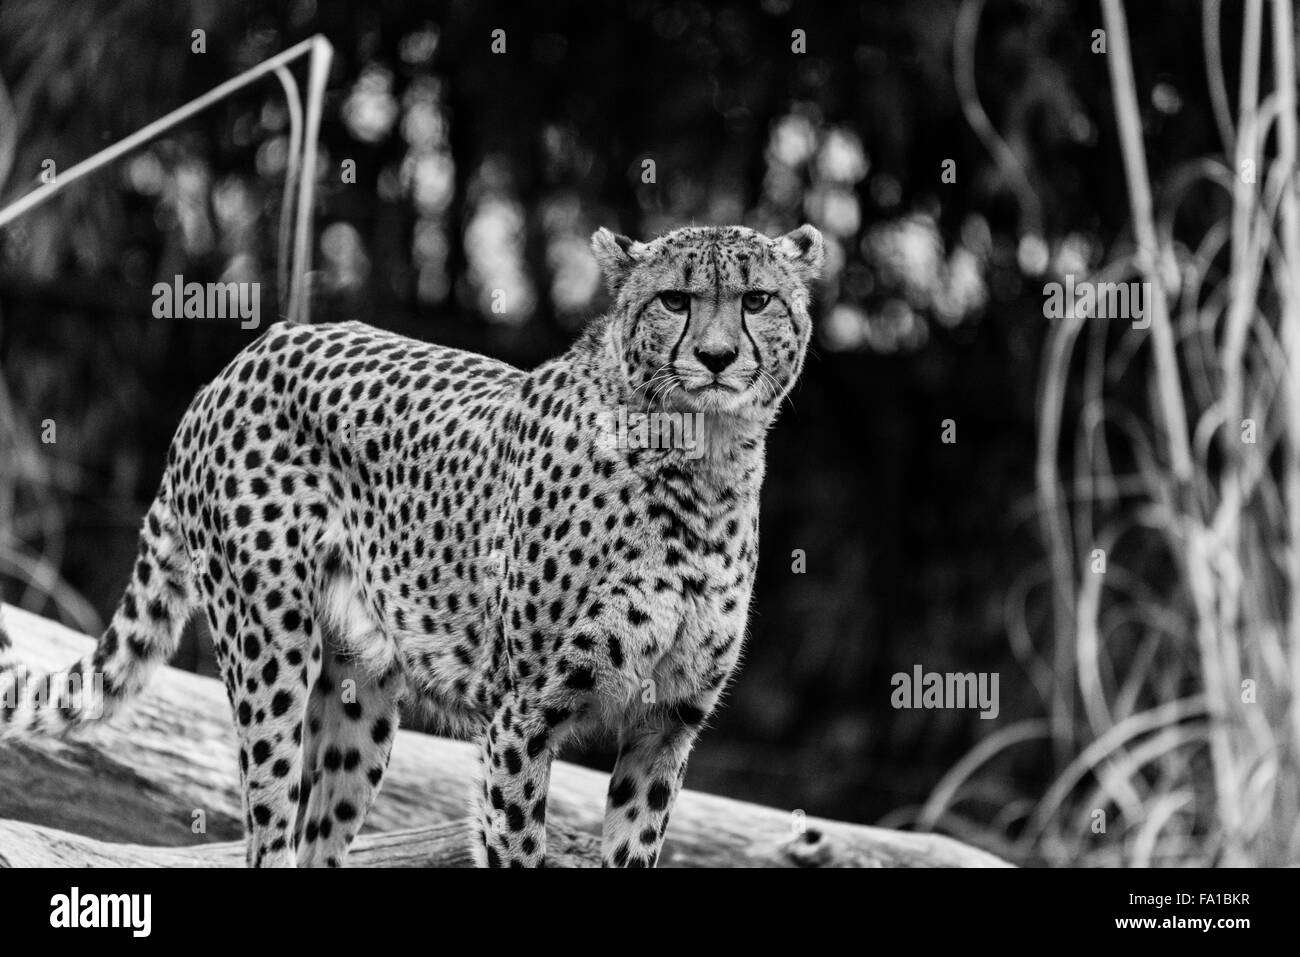 Cheetah Starring at Camera in Black and White - Stock Image